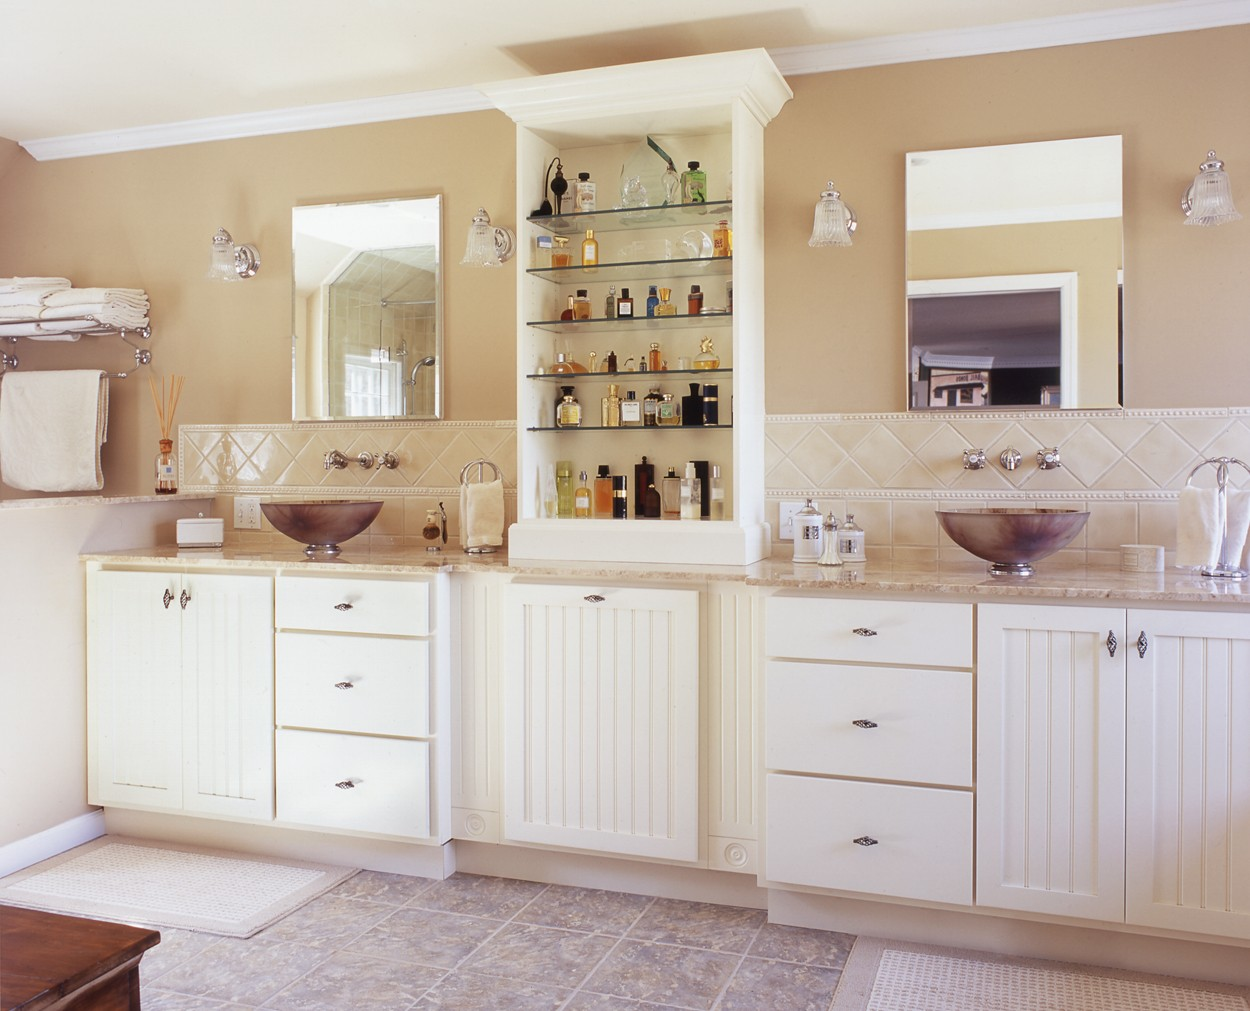 Nantucket style vanities with tower between them, in Clark Construction Wilton CT bath remodel.